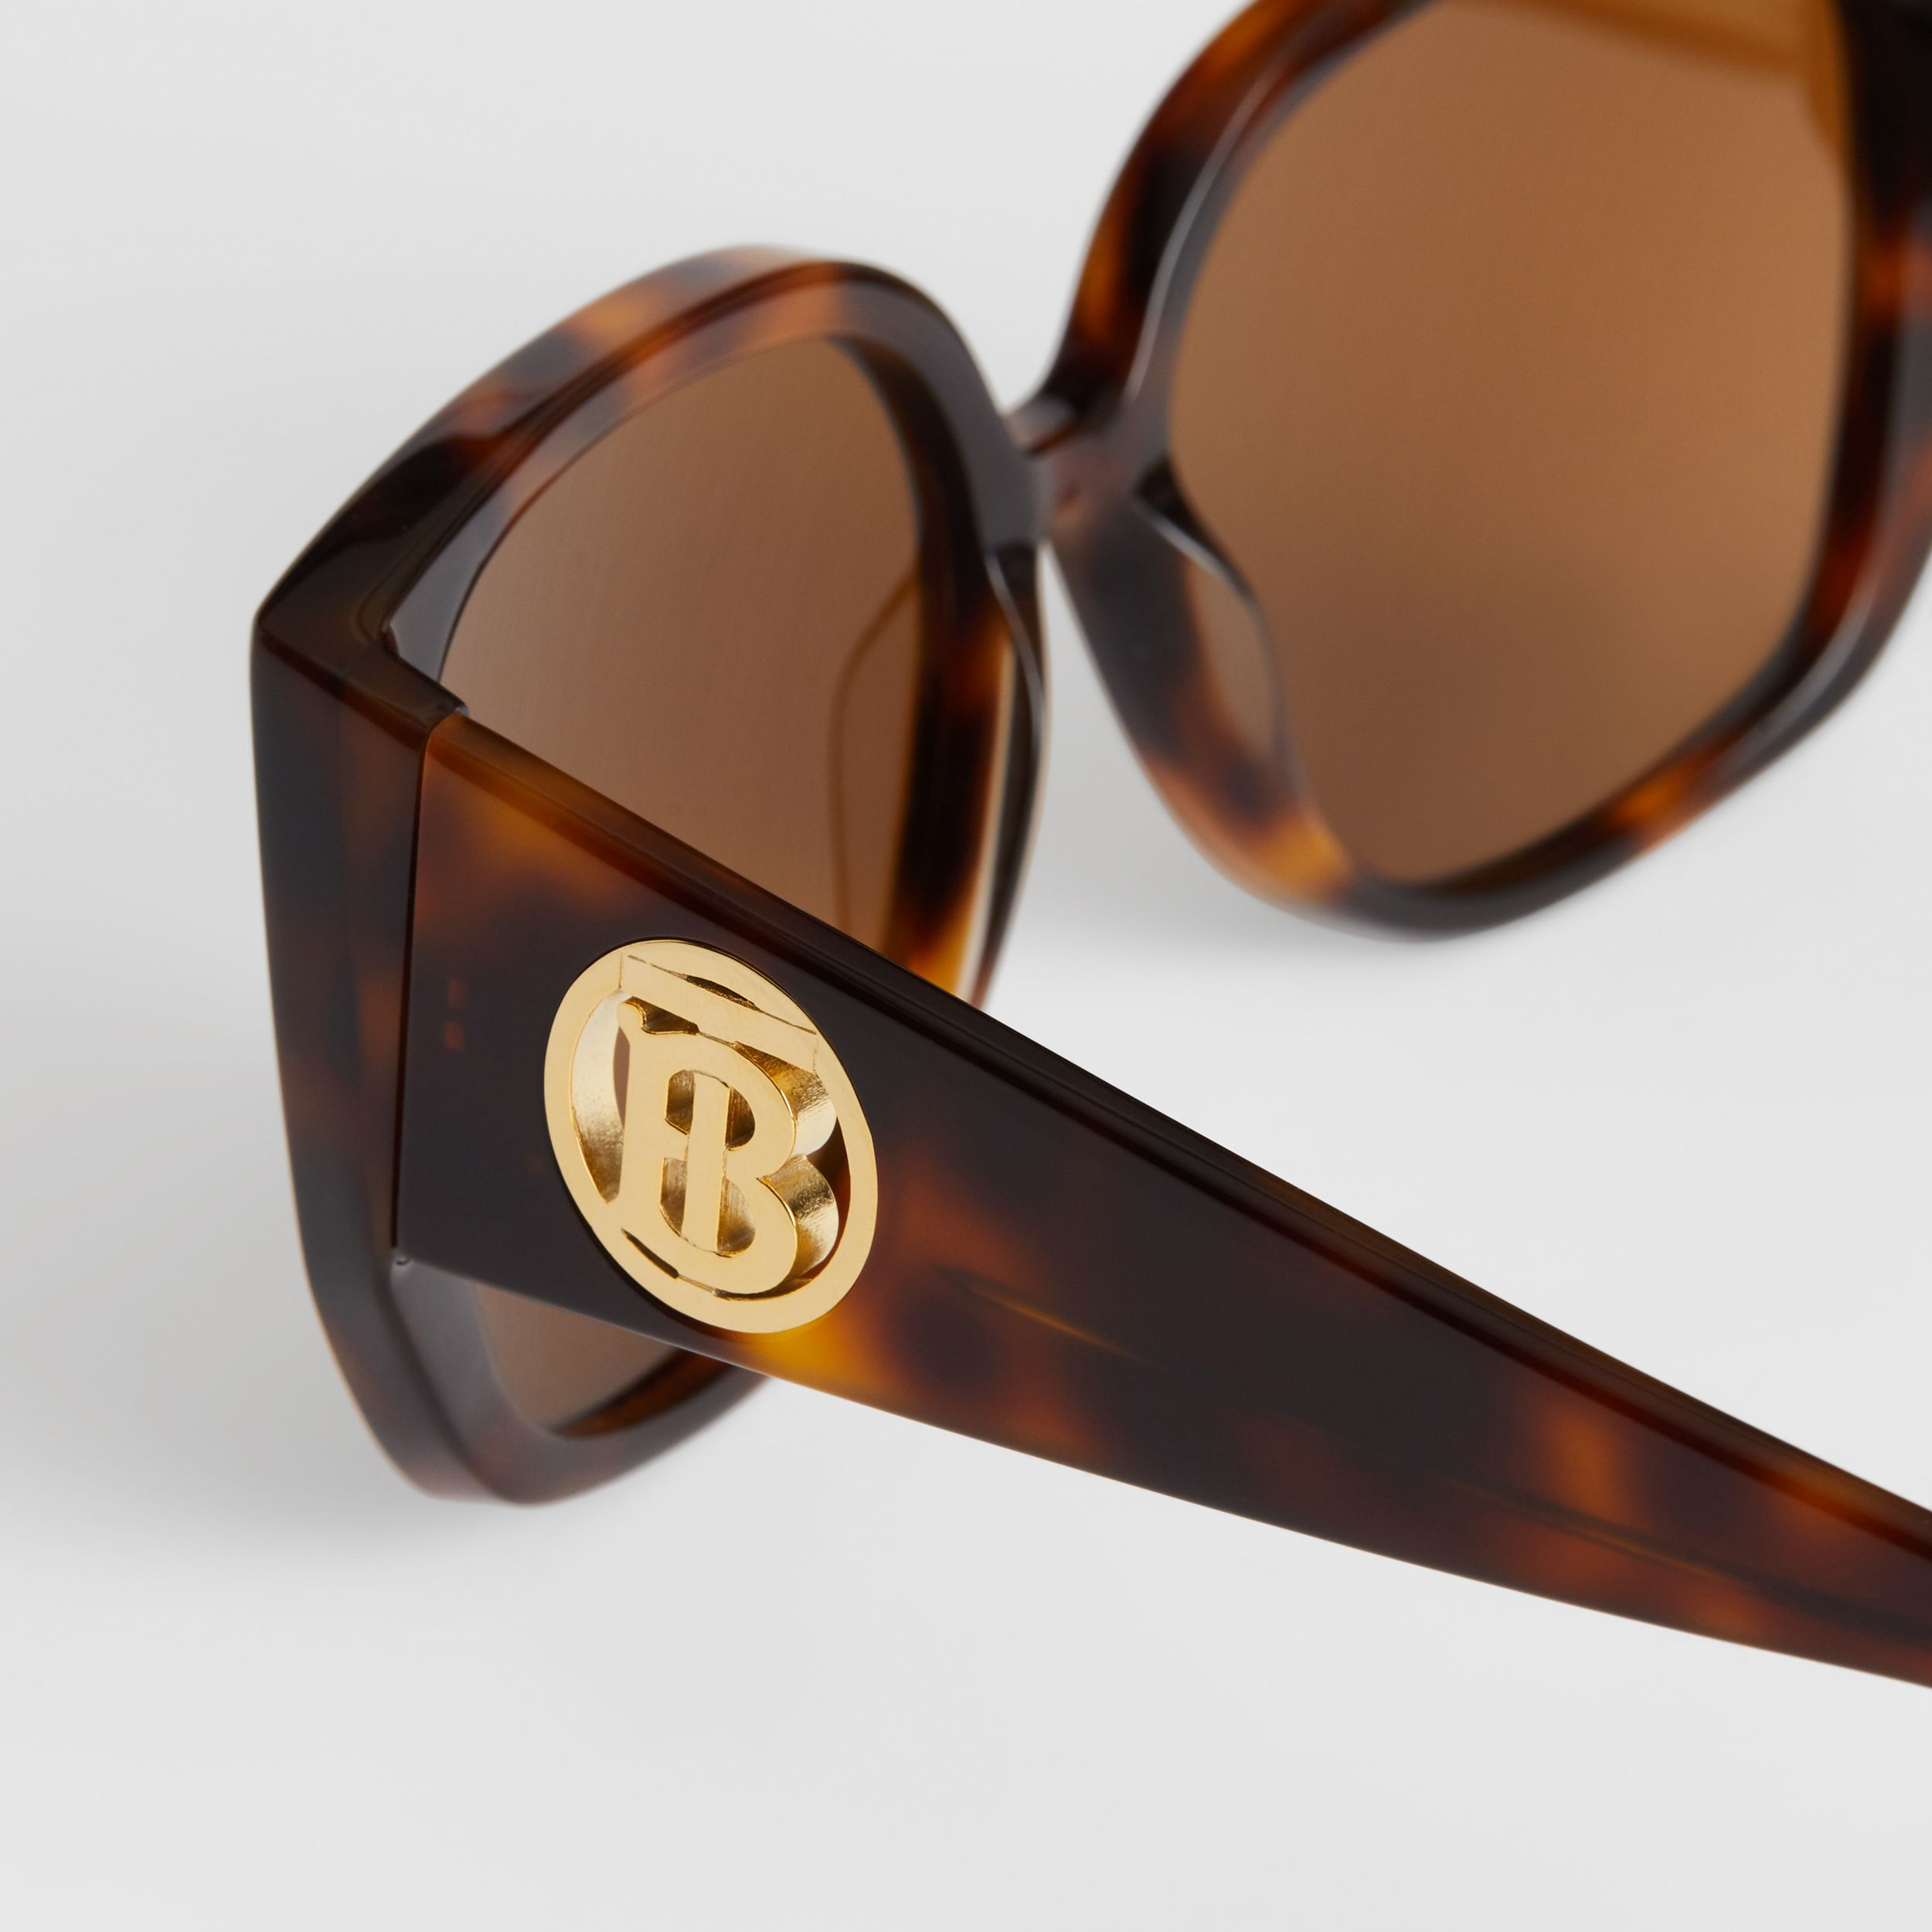 Oversized Butterfly Frame Sunglasses in Tortoiseshell - Women | Burberry Hong Kong S.A.R. - 2